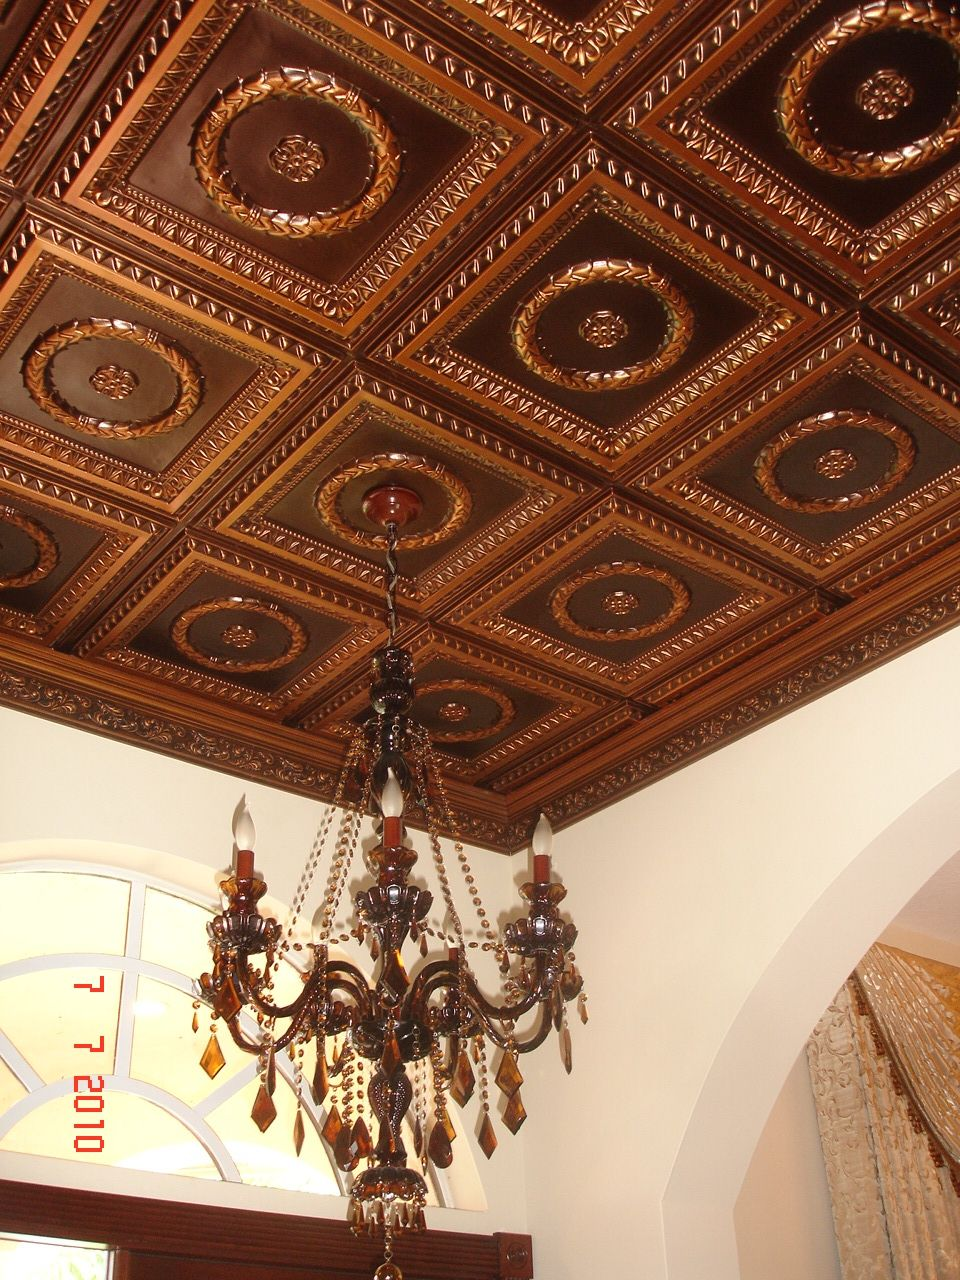 Tin ceiling tiles plastic httpcreativechairsandtables ceiling tiles home depot decor ceilings offers decorative ceiling tiles ranging from tin polystyrene foam pvc tiles to include installation of ceiling dailygadgetfo Images